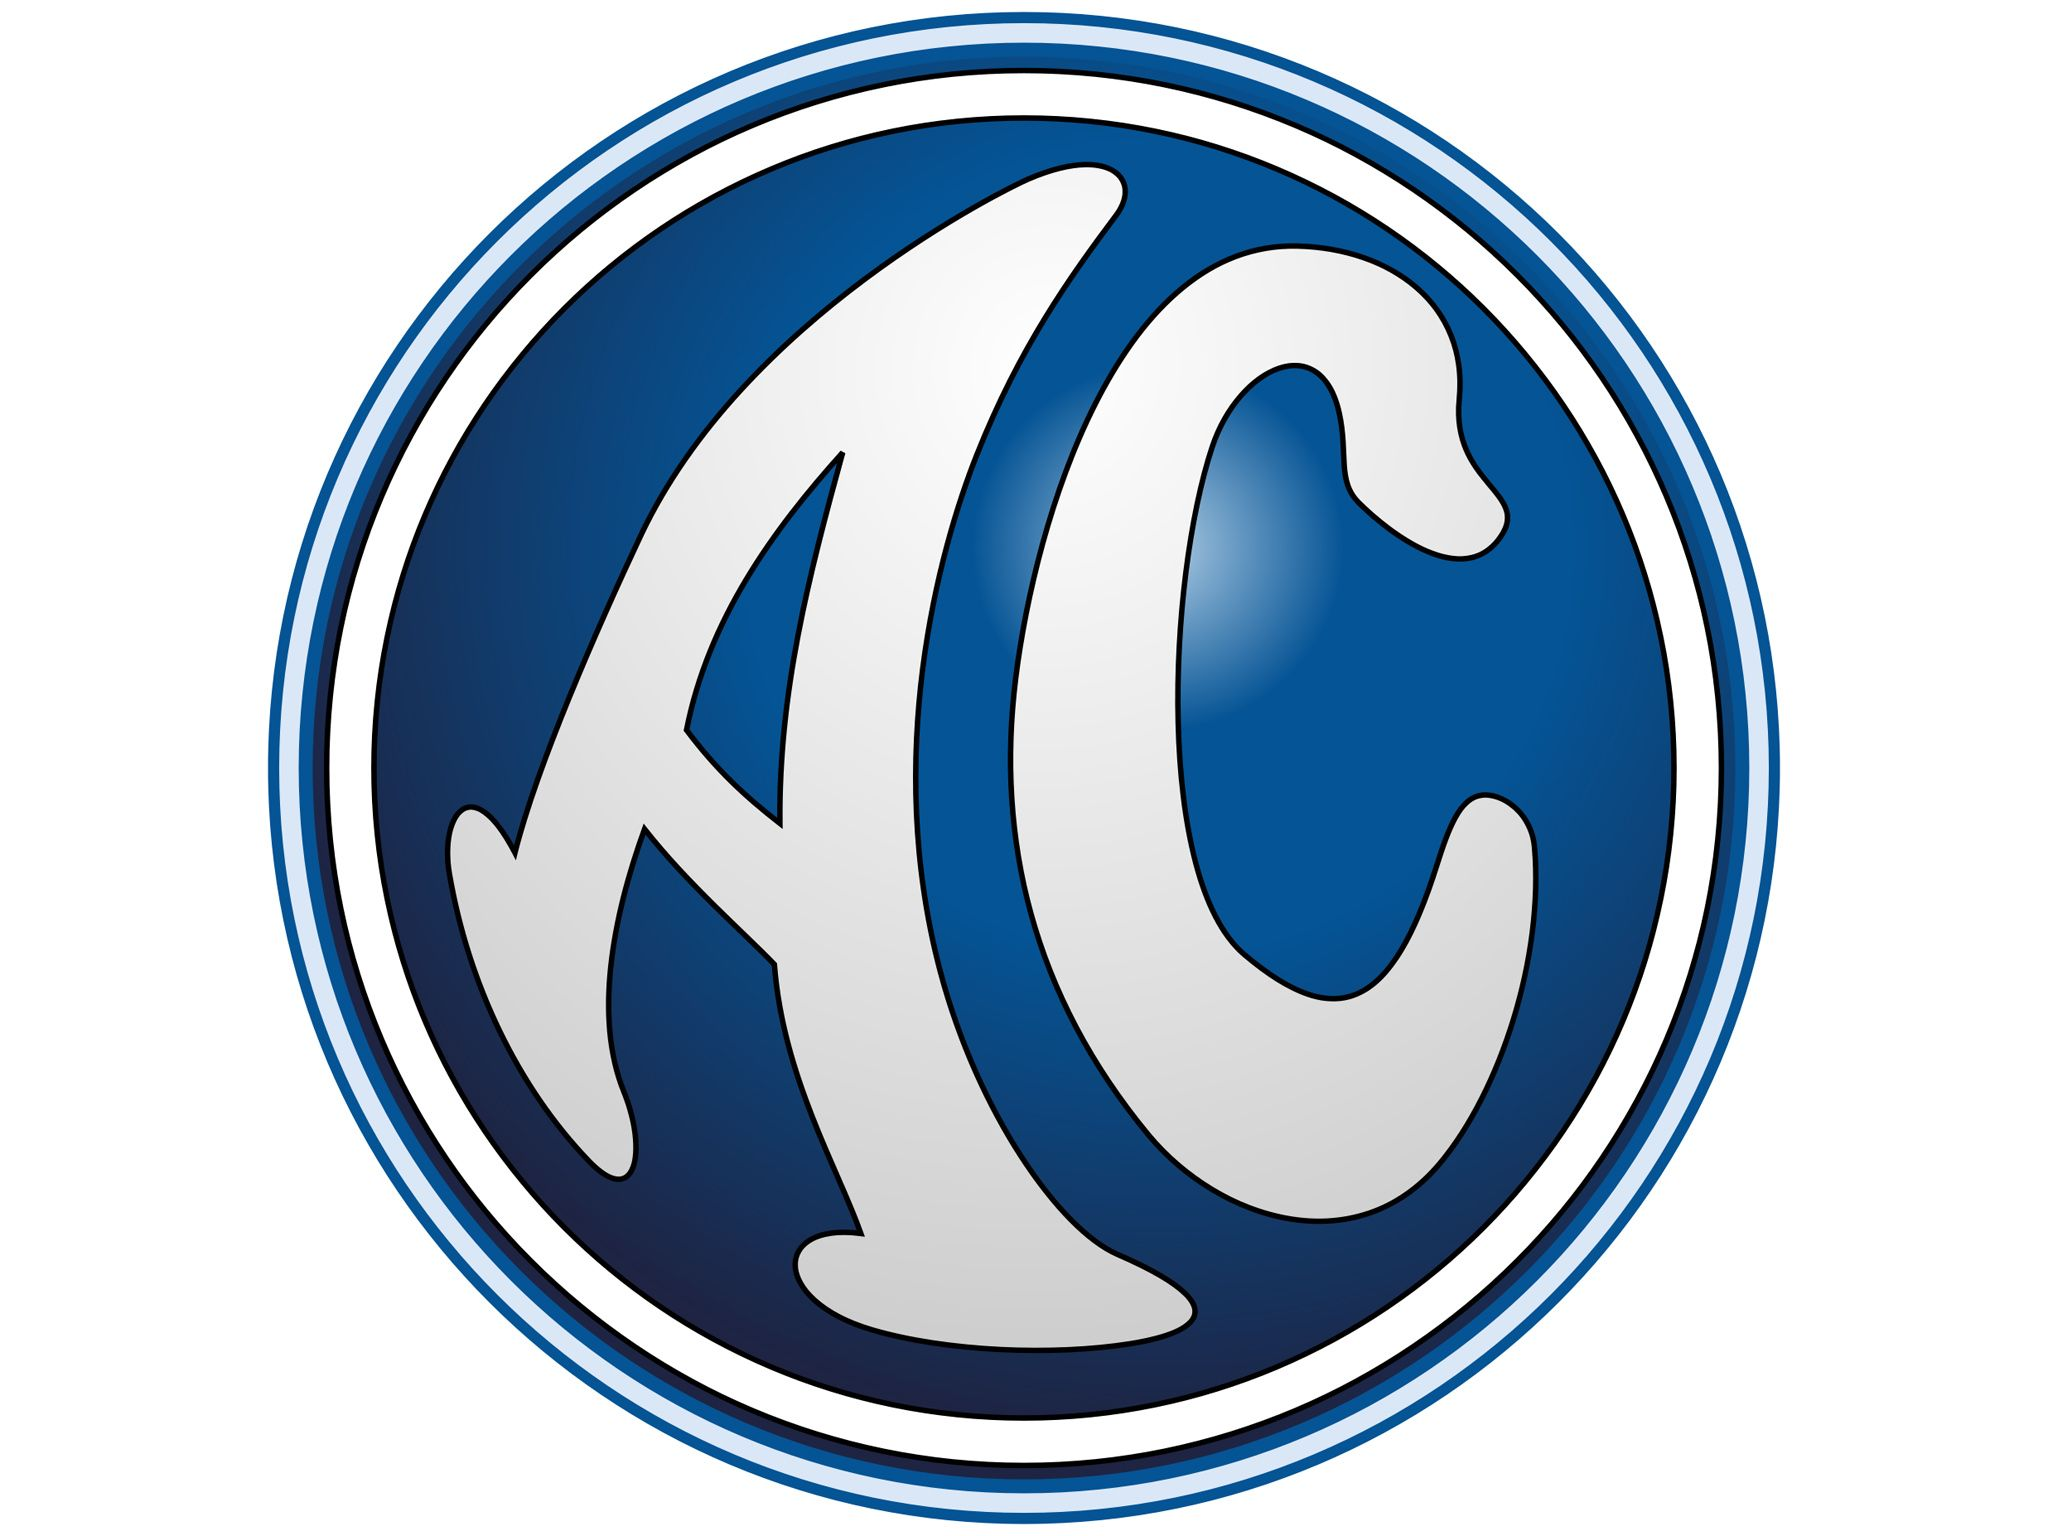 Ac Cars Logo Wallpaper Ac Cobra Cars Car Logos Automobile